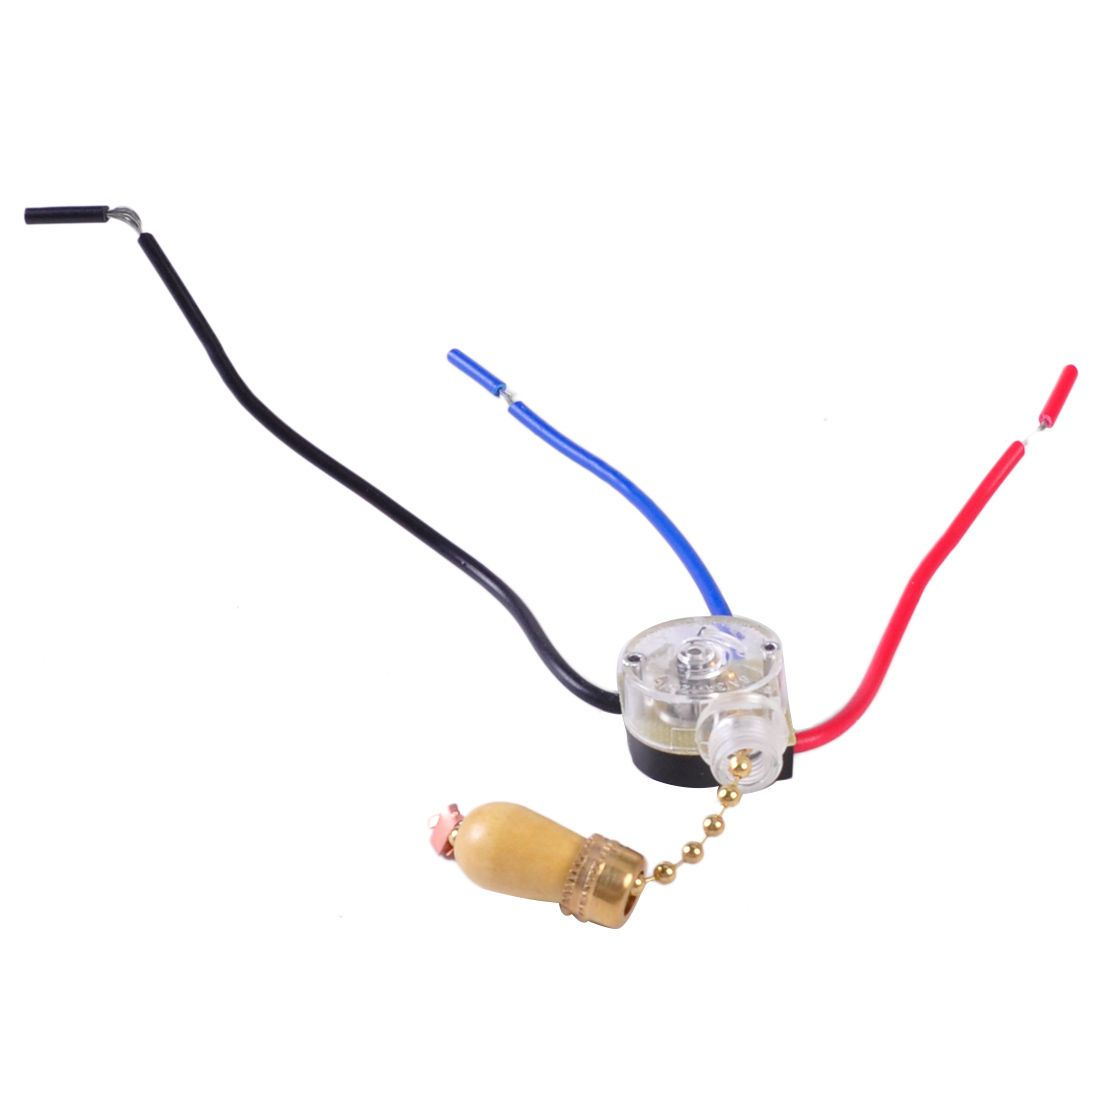 285 3 Wires Ceiling Fan Pull Chain Cord Switch Control Wall Light Replacement Lamp